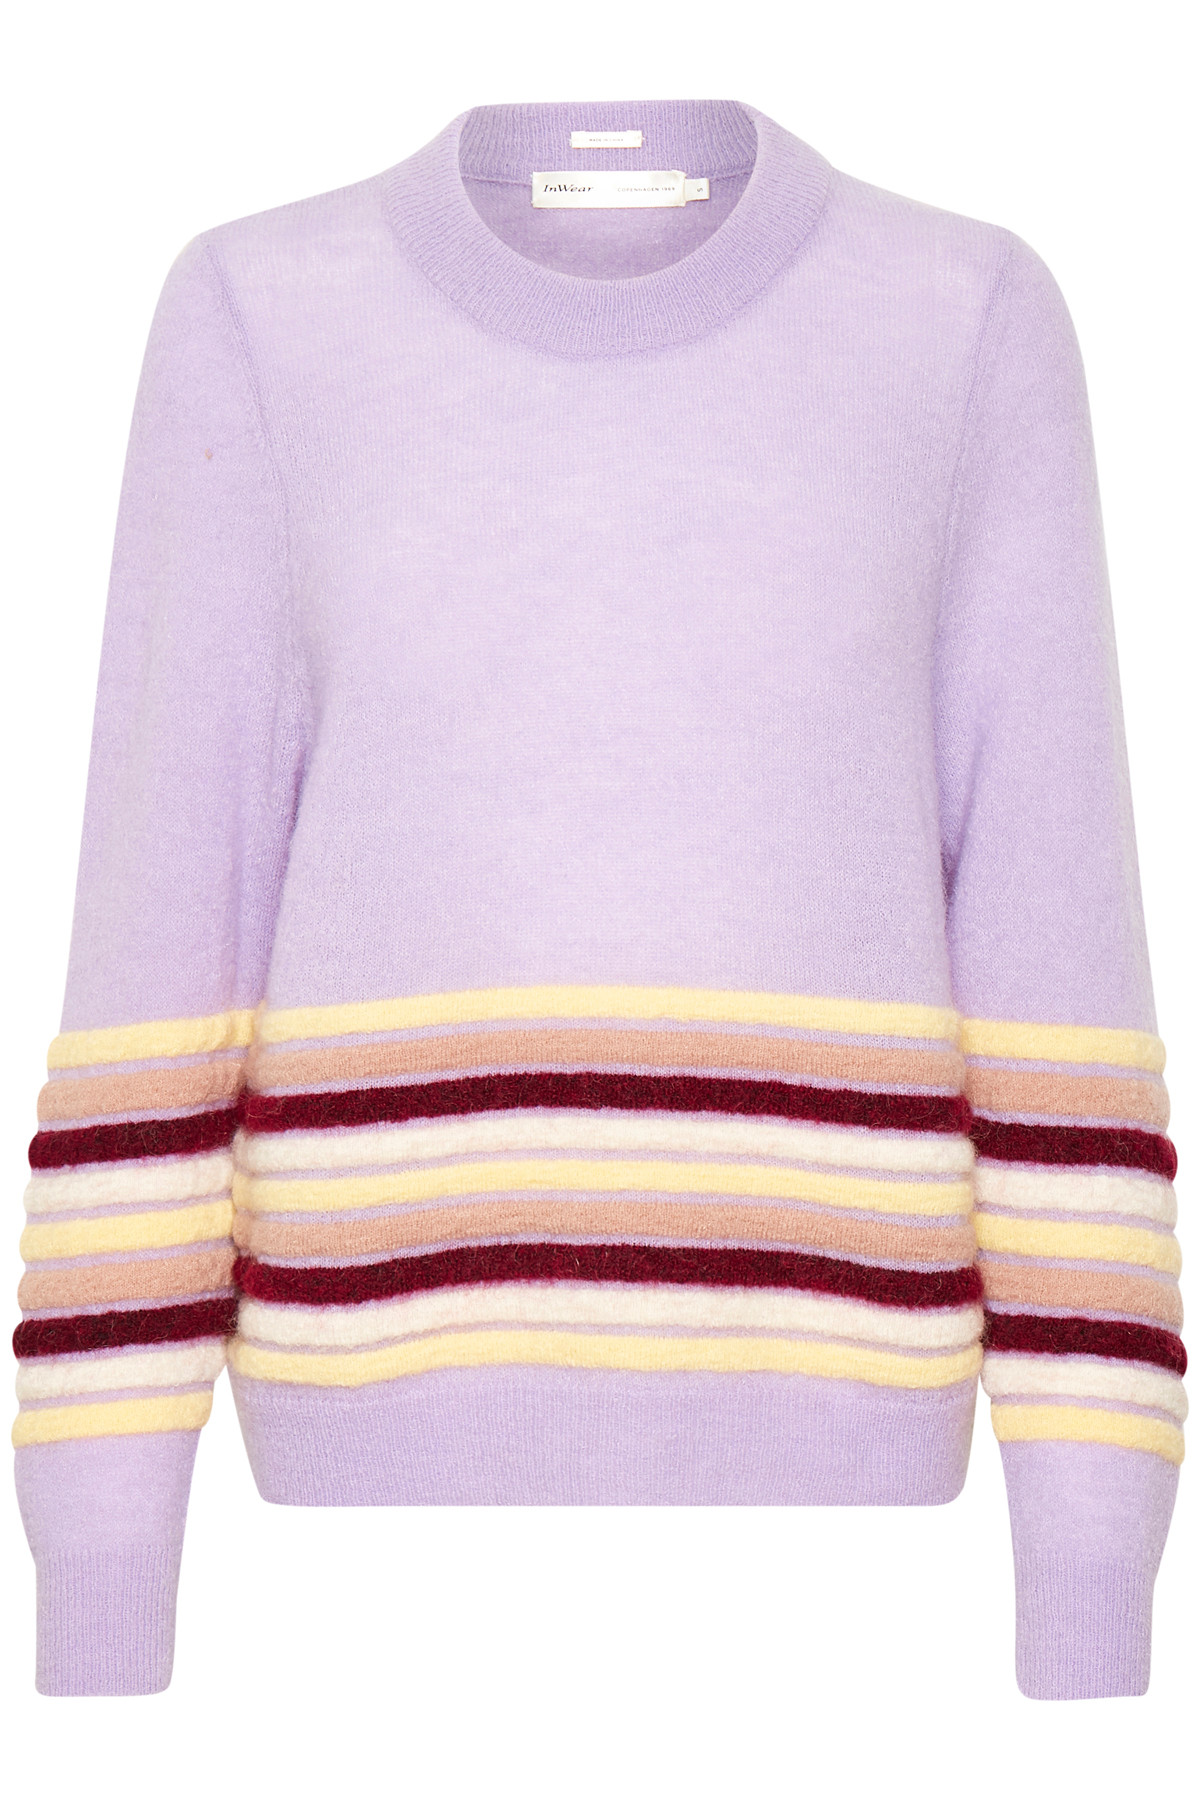 Image of   InWear NOREEN PULLOVER 30103990 (Purple Rose 10390, M)